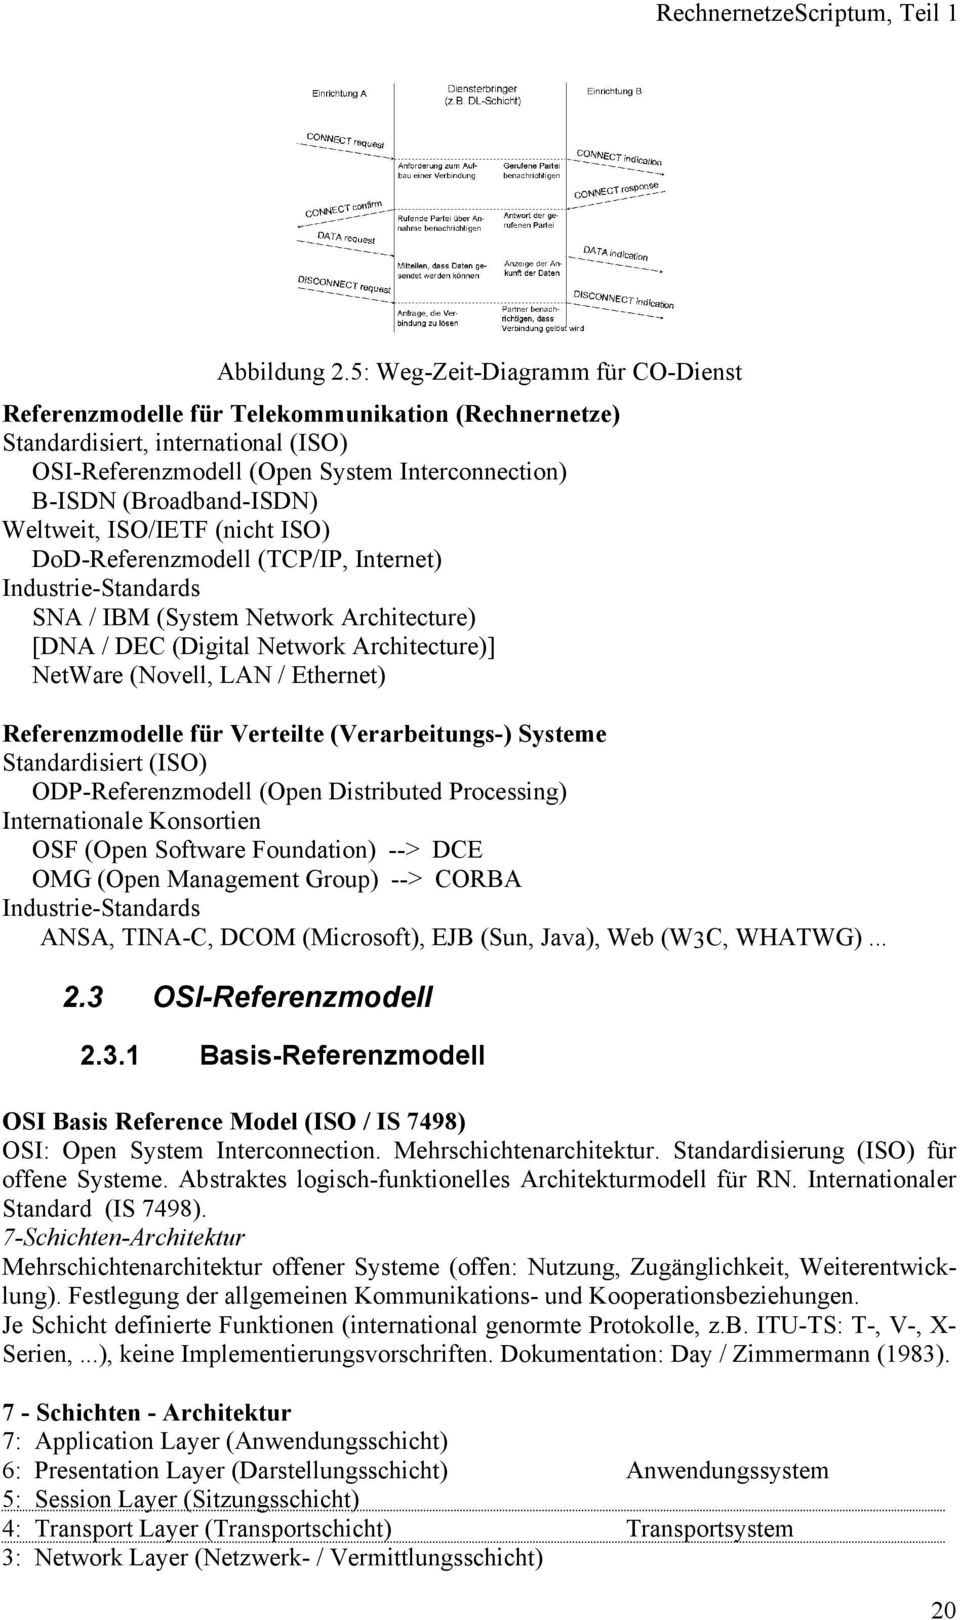 Weltweit, ISO/IETF (nicht ISO) DoD-Referenzmodell (TCP/IP, Internet) Industrie-Standards SNA / IBM (System Network Architecture) [DNA / DEC (Digital Network Architecture)] NetWare (Novell, LAN /